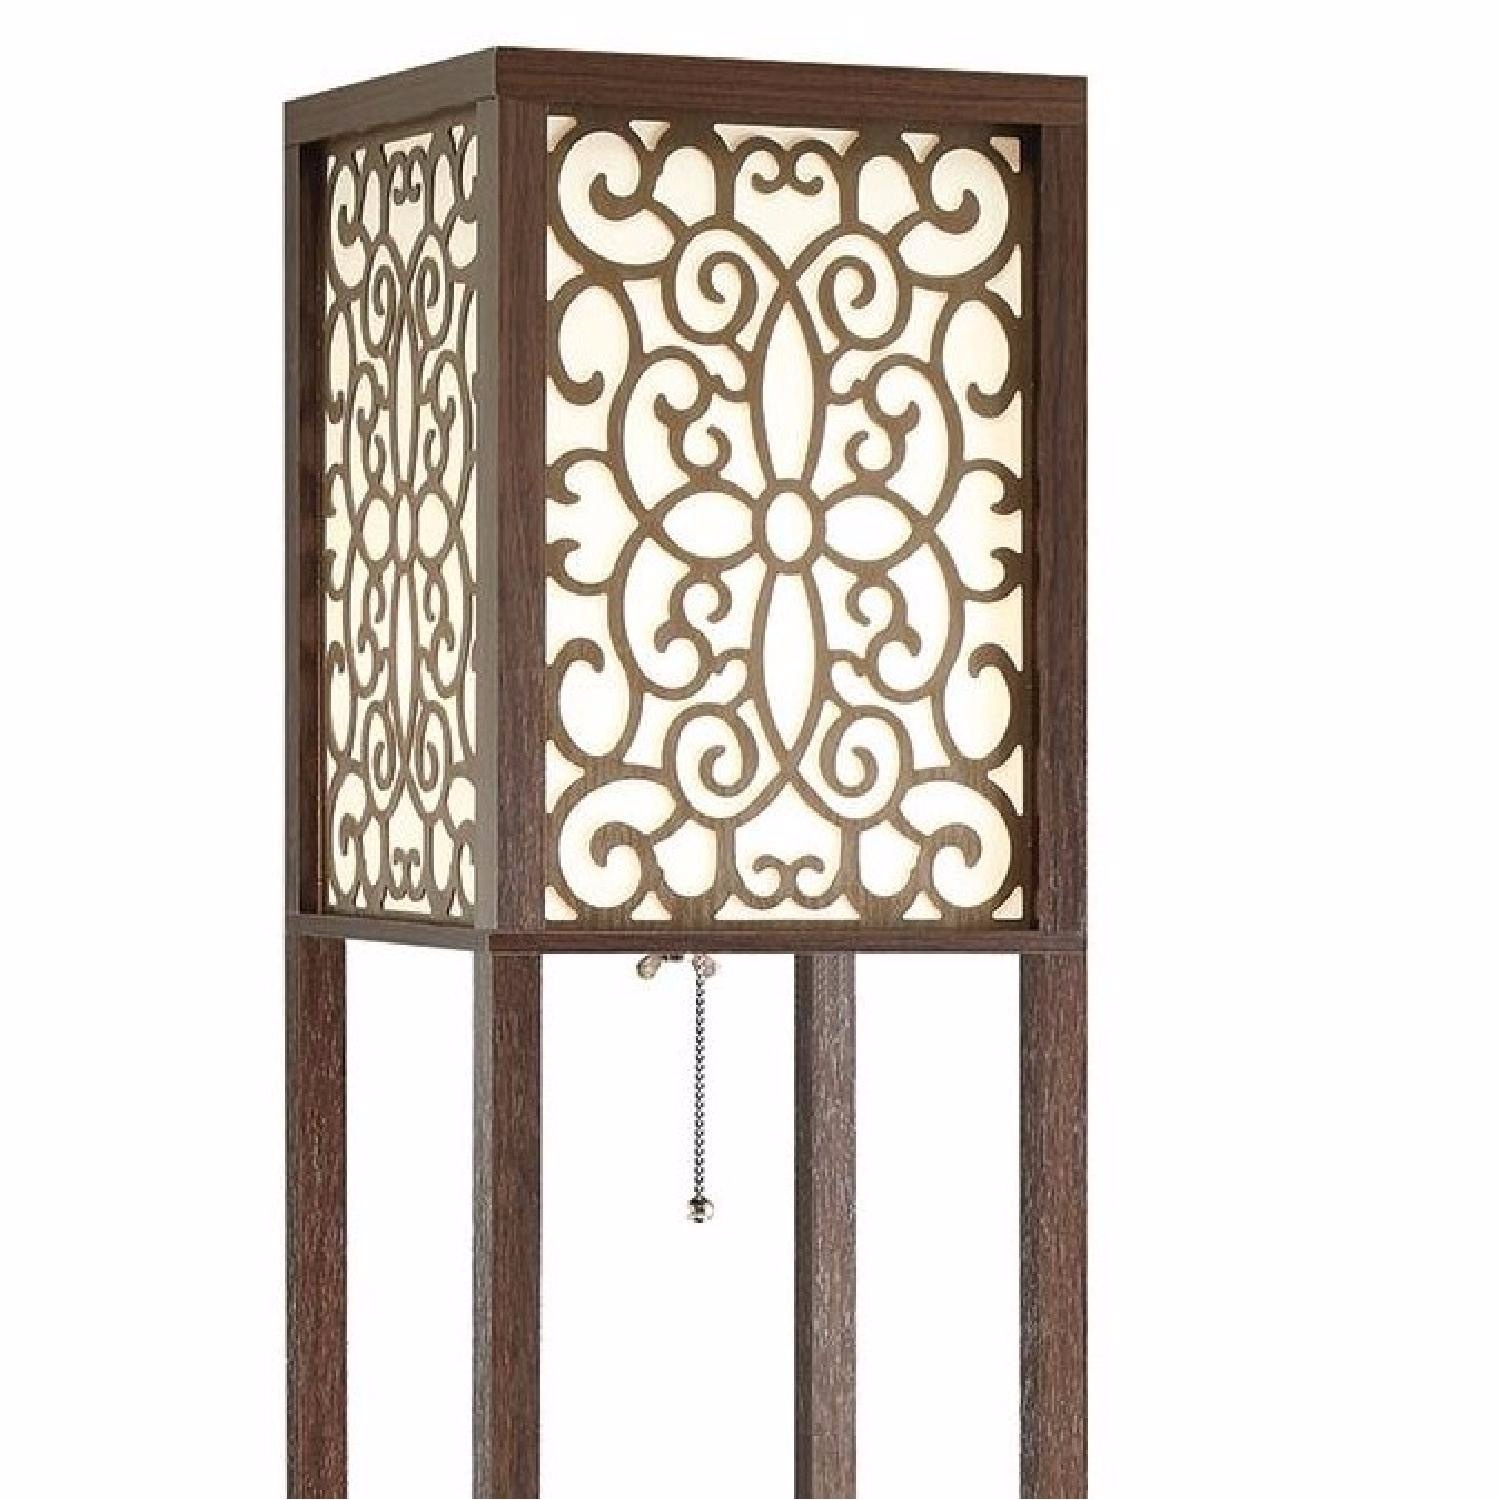 Floor Lamp with Shelves - image-2